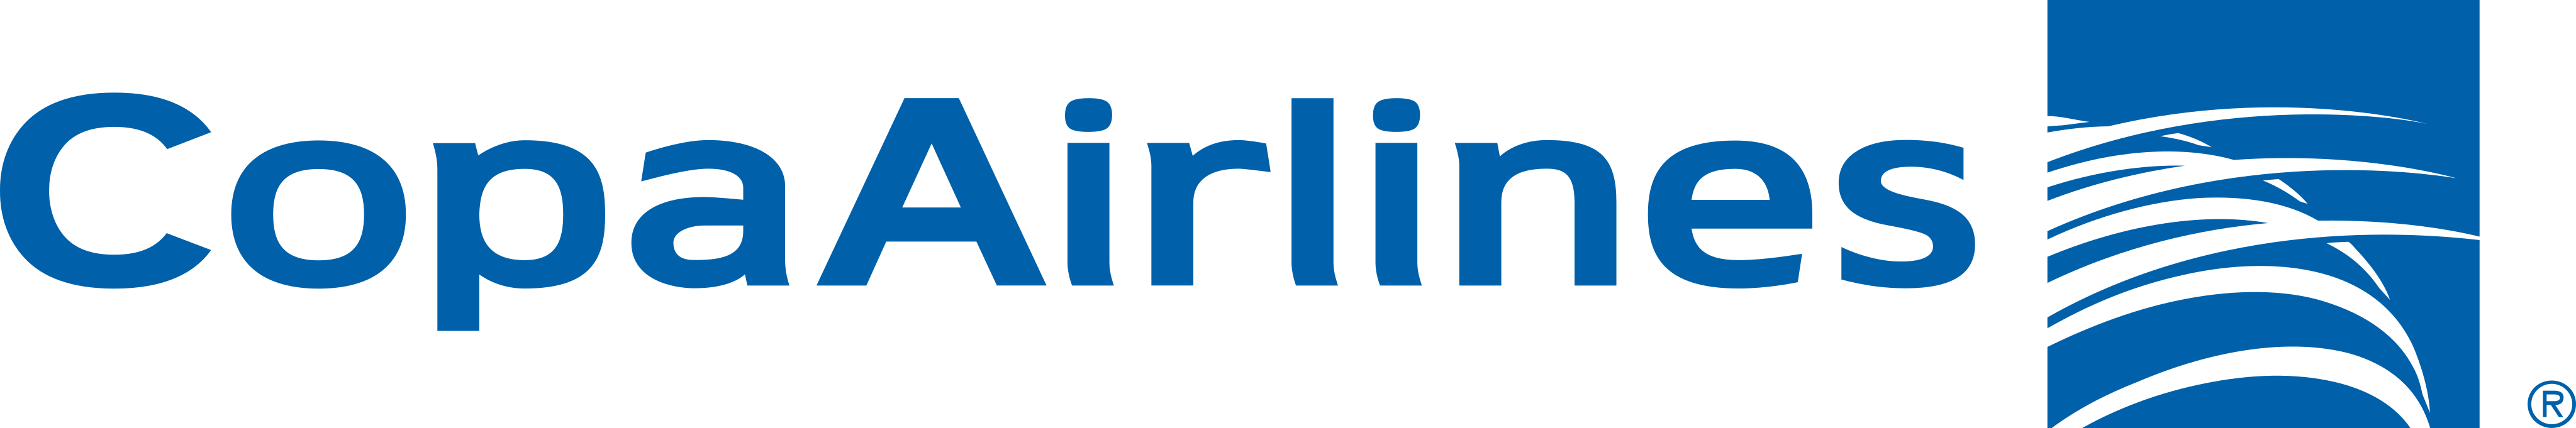 copa airlines logo - Copa Airlines Logo